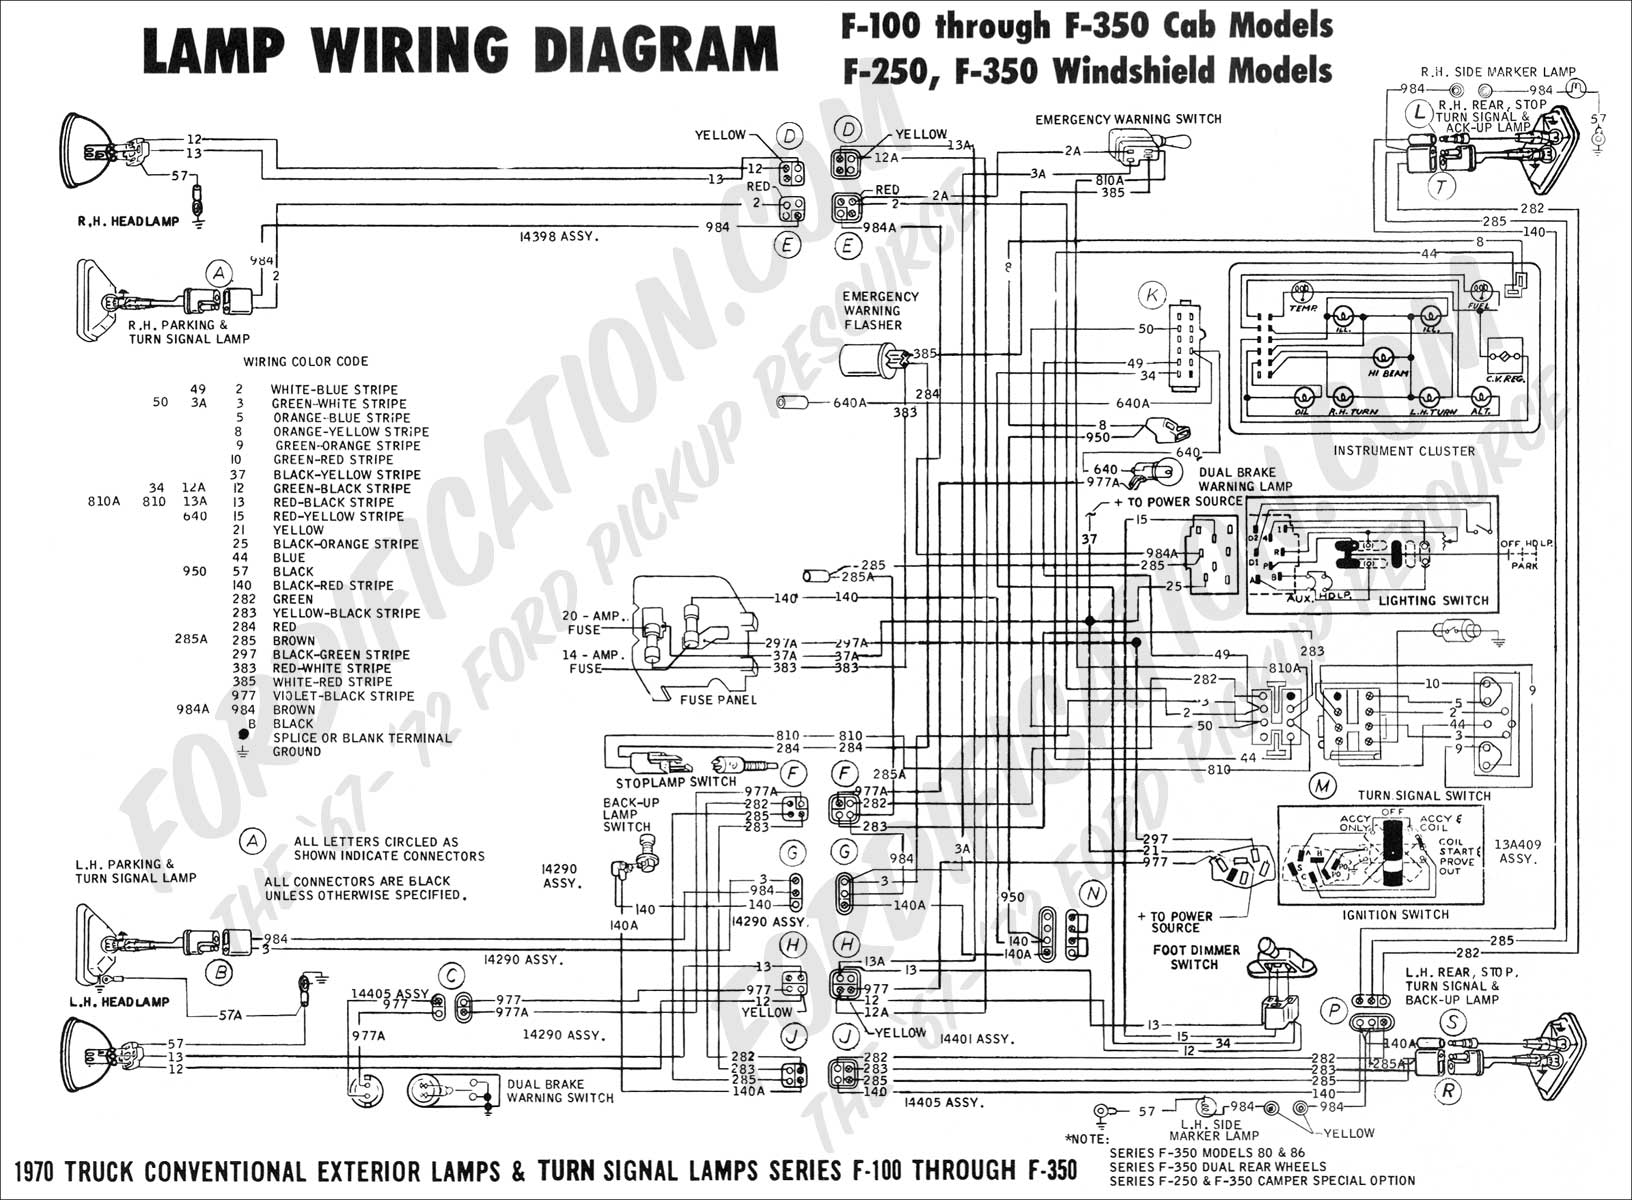 wiring diagram_70ext lights01 ford truck technical drawings and schematics section h wiring 87 ranger wiring diagram at nearapp.co